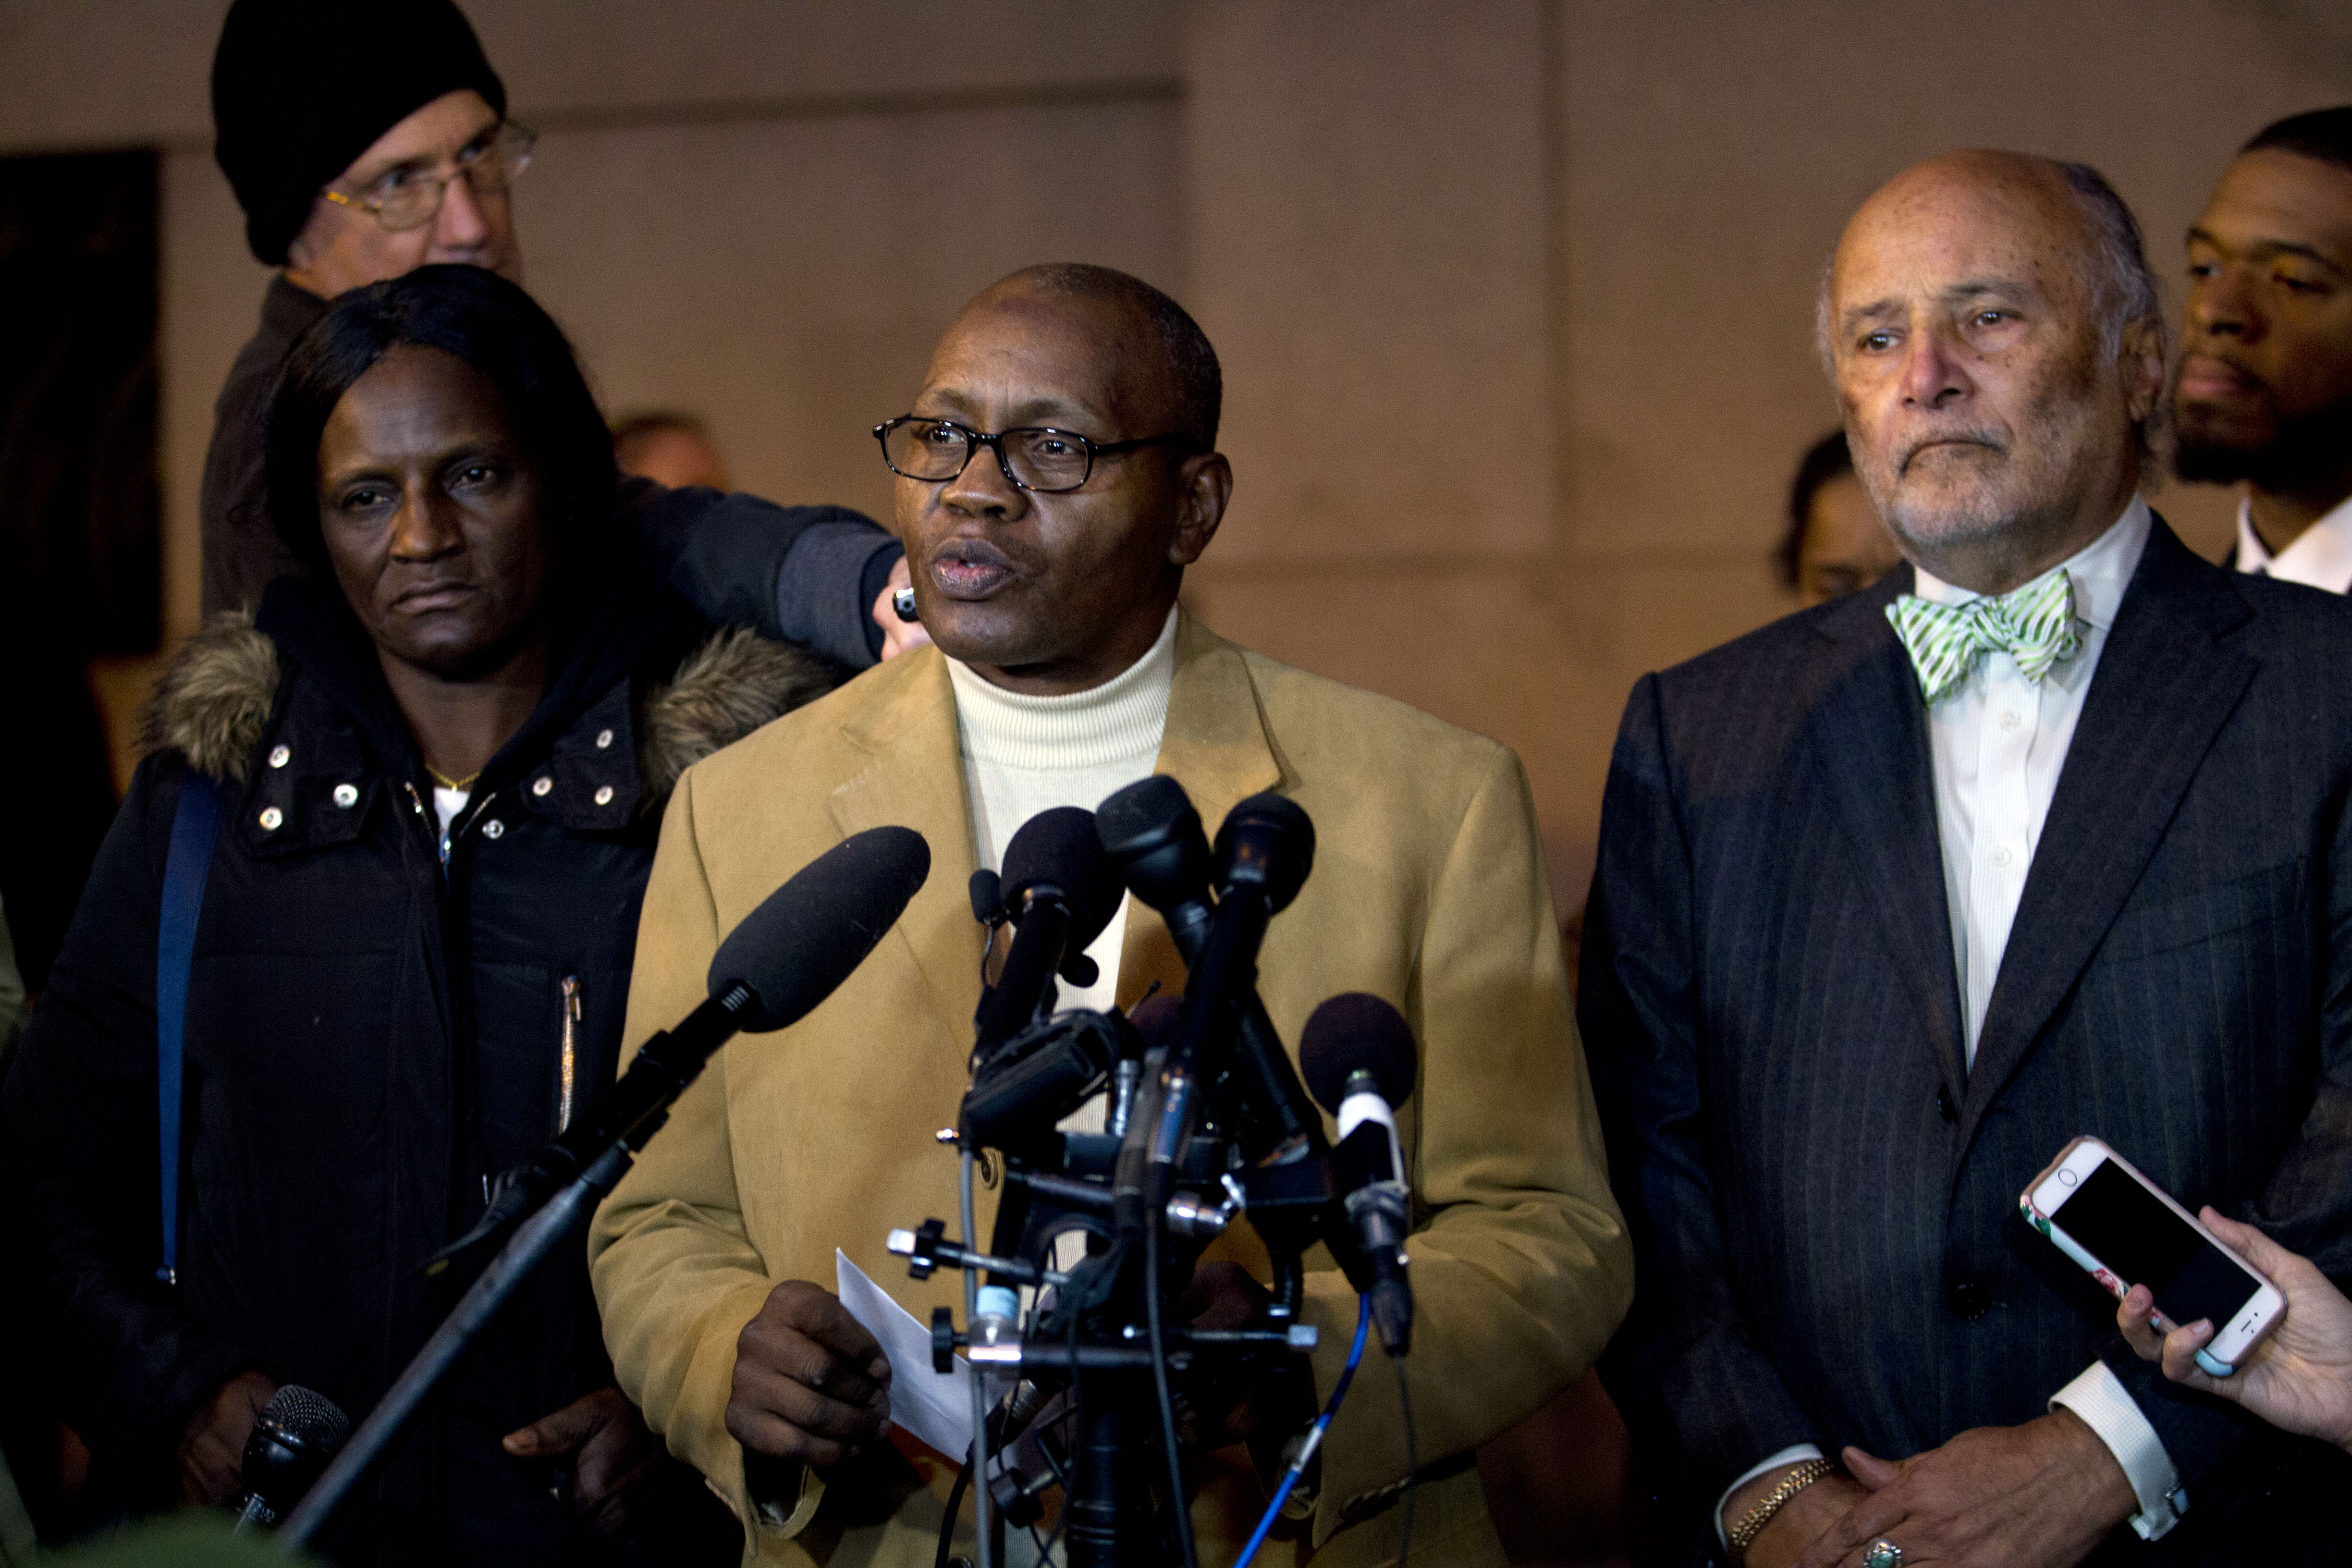 Freddie Gray's stepfather Richard Shipley, center, with Gray's mother Gloria Darden and lawyer Billy Murphy, speaks with the media after a mistrial was declared in the manslaughter trial of Officer William Porter, one of six Baltimore city police officers charged in connection to the death of Freddie Gray on Wednesday, Dec. 16, 2015, in Baltimore Md. (AP Photo/Jose Luis Magana)